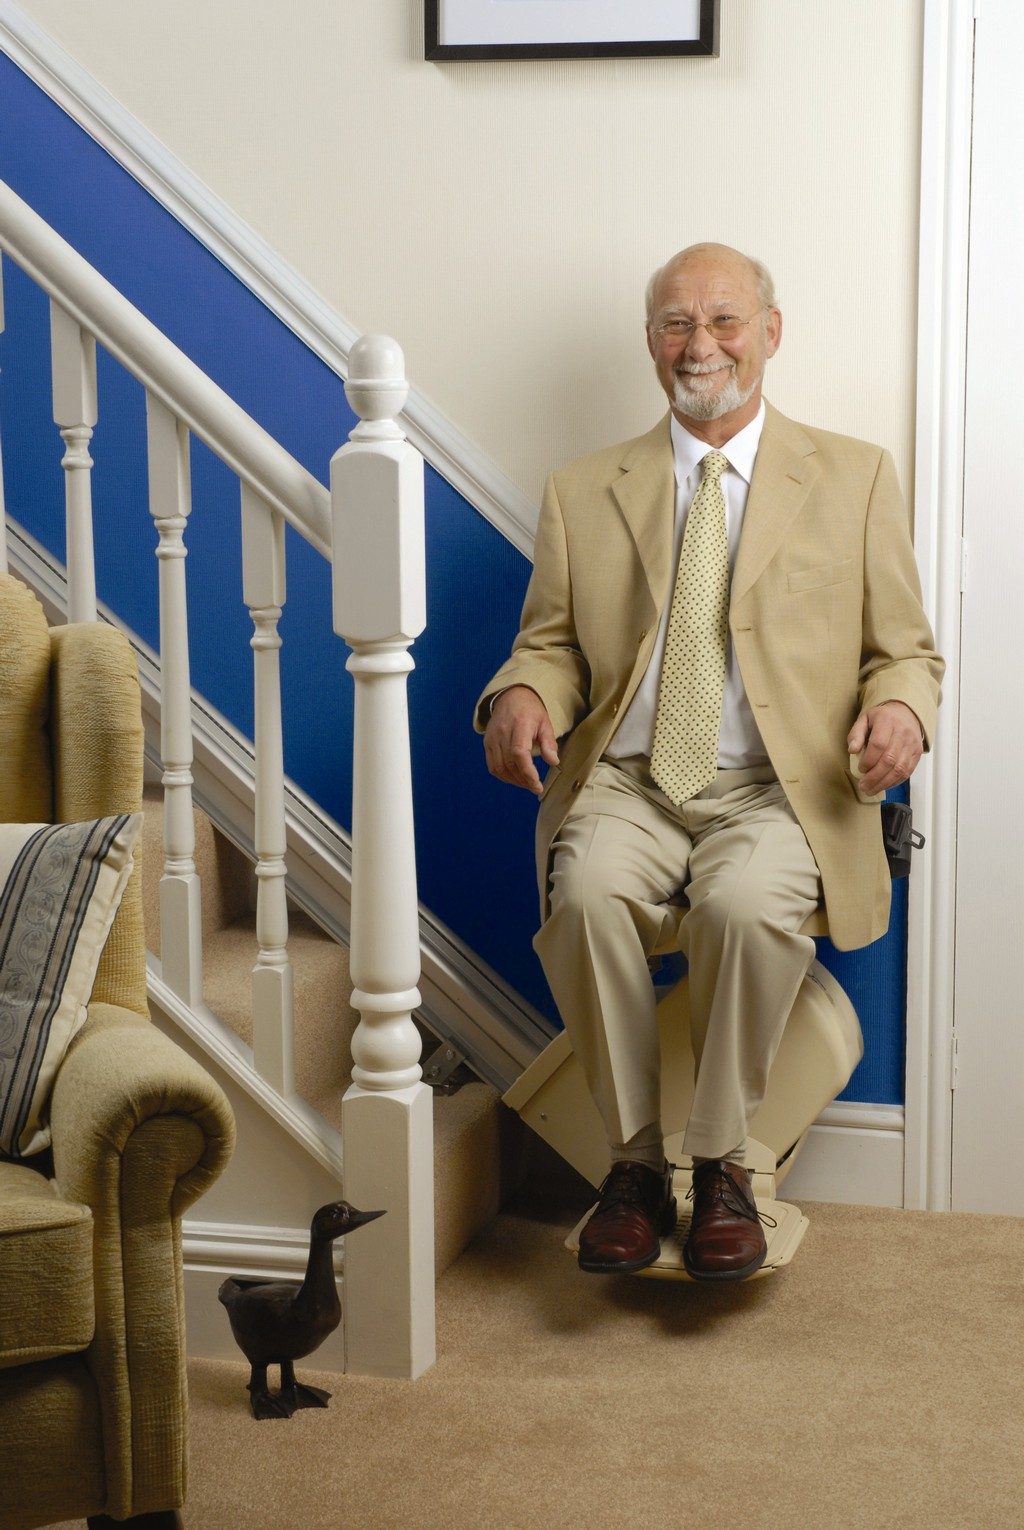 acorn superlide stair lift, stair lifts for the elderly, stair lifts price, stair lifts